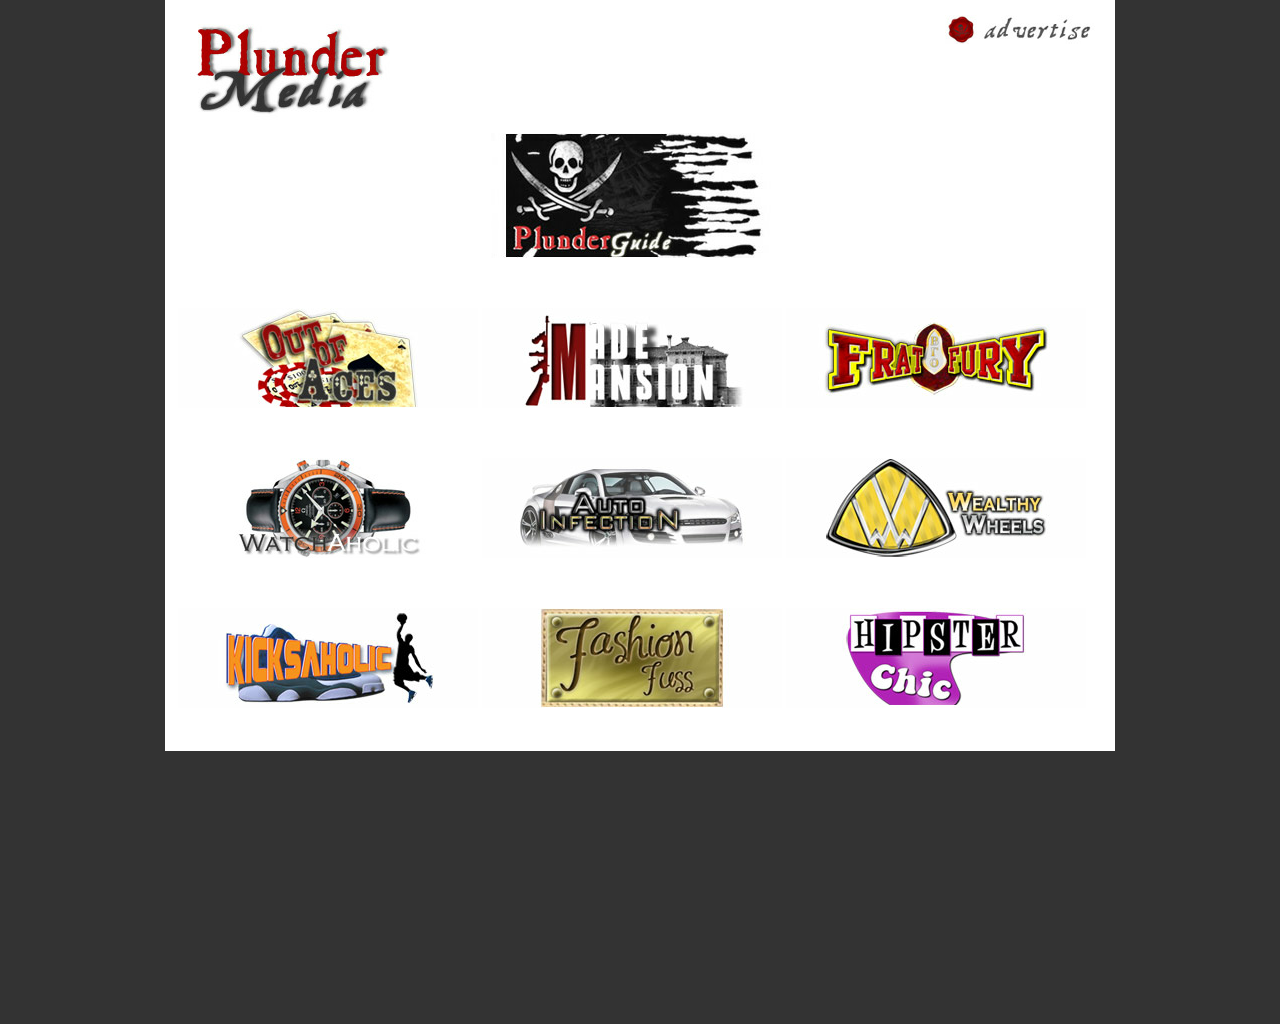 Plunder-Media-Advertising-Reviews-Pricing